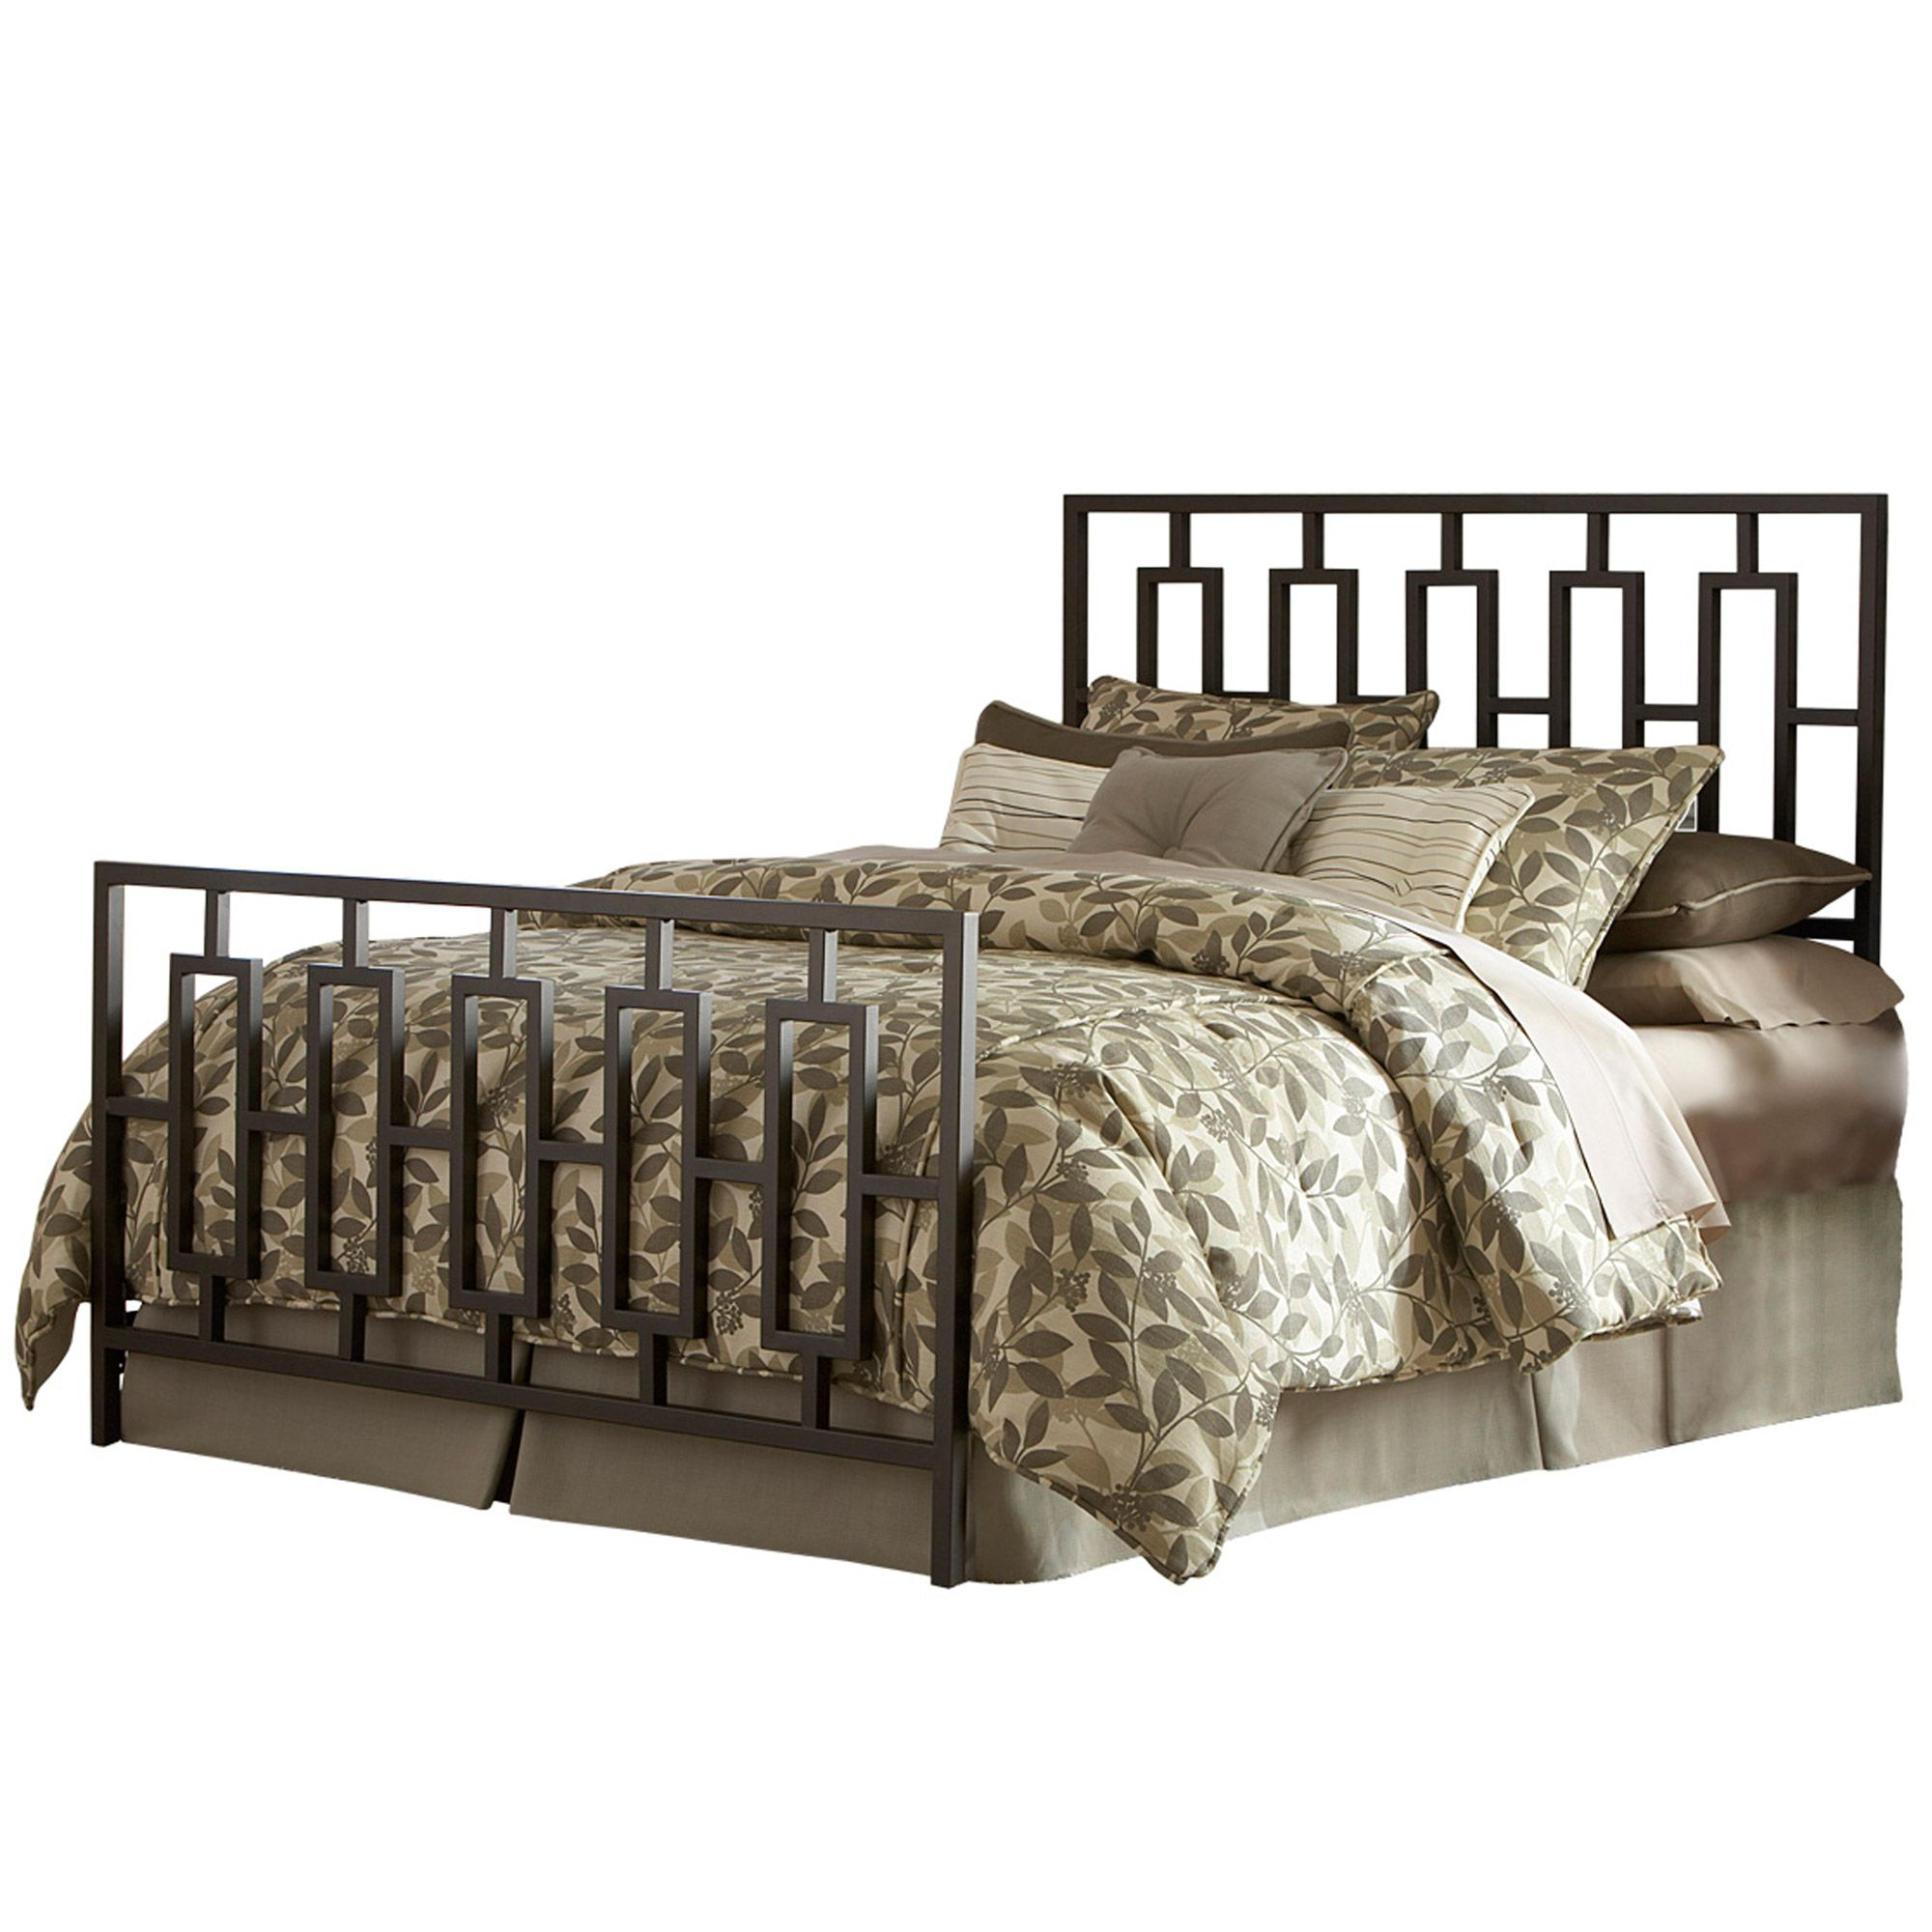 Best Miami Iron Bed Sleek Contemporary Design Coffee Finish 400 x 300